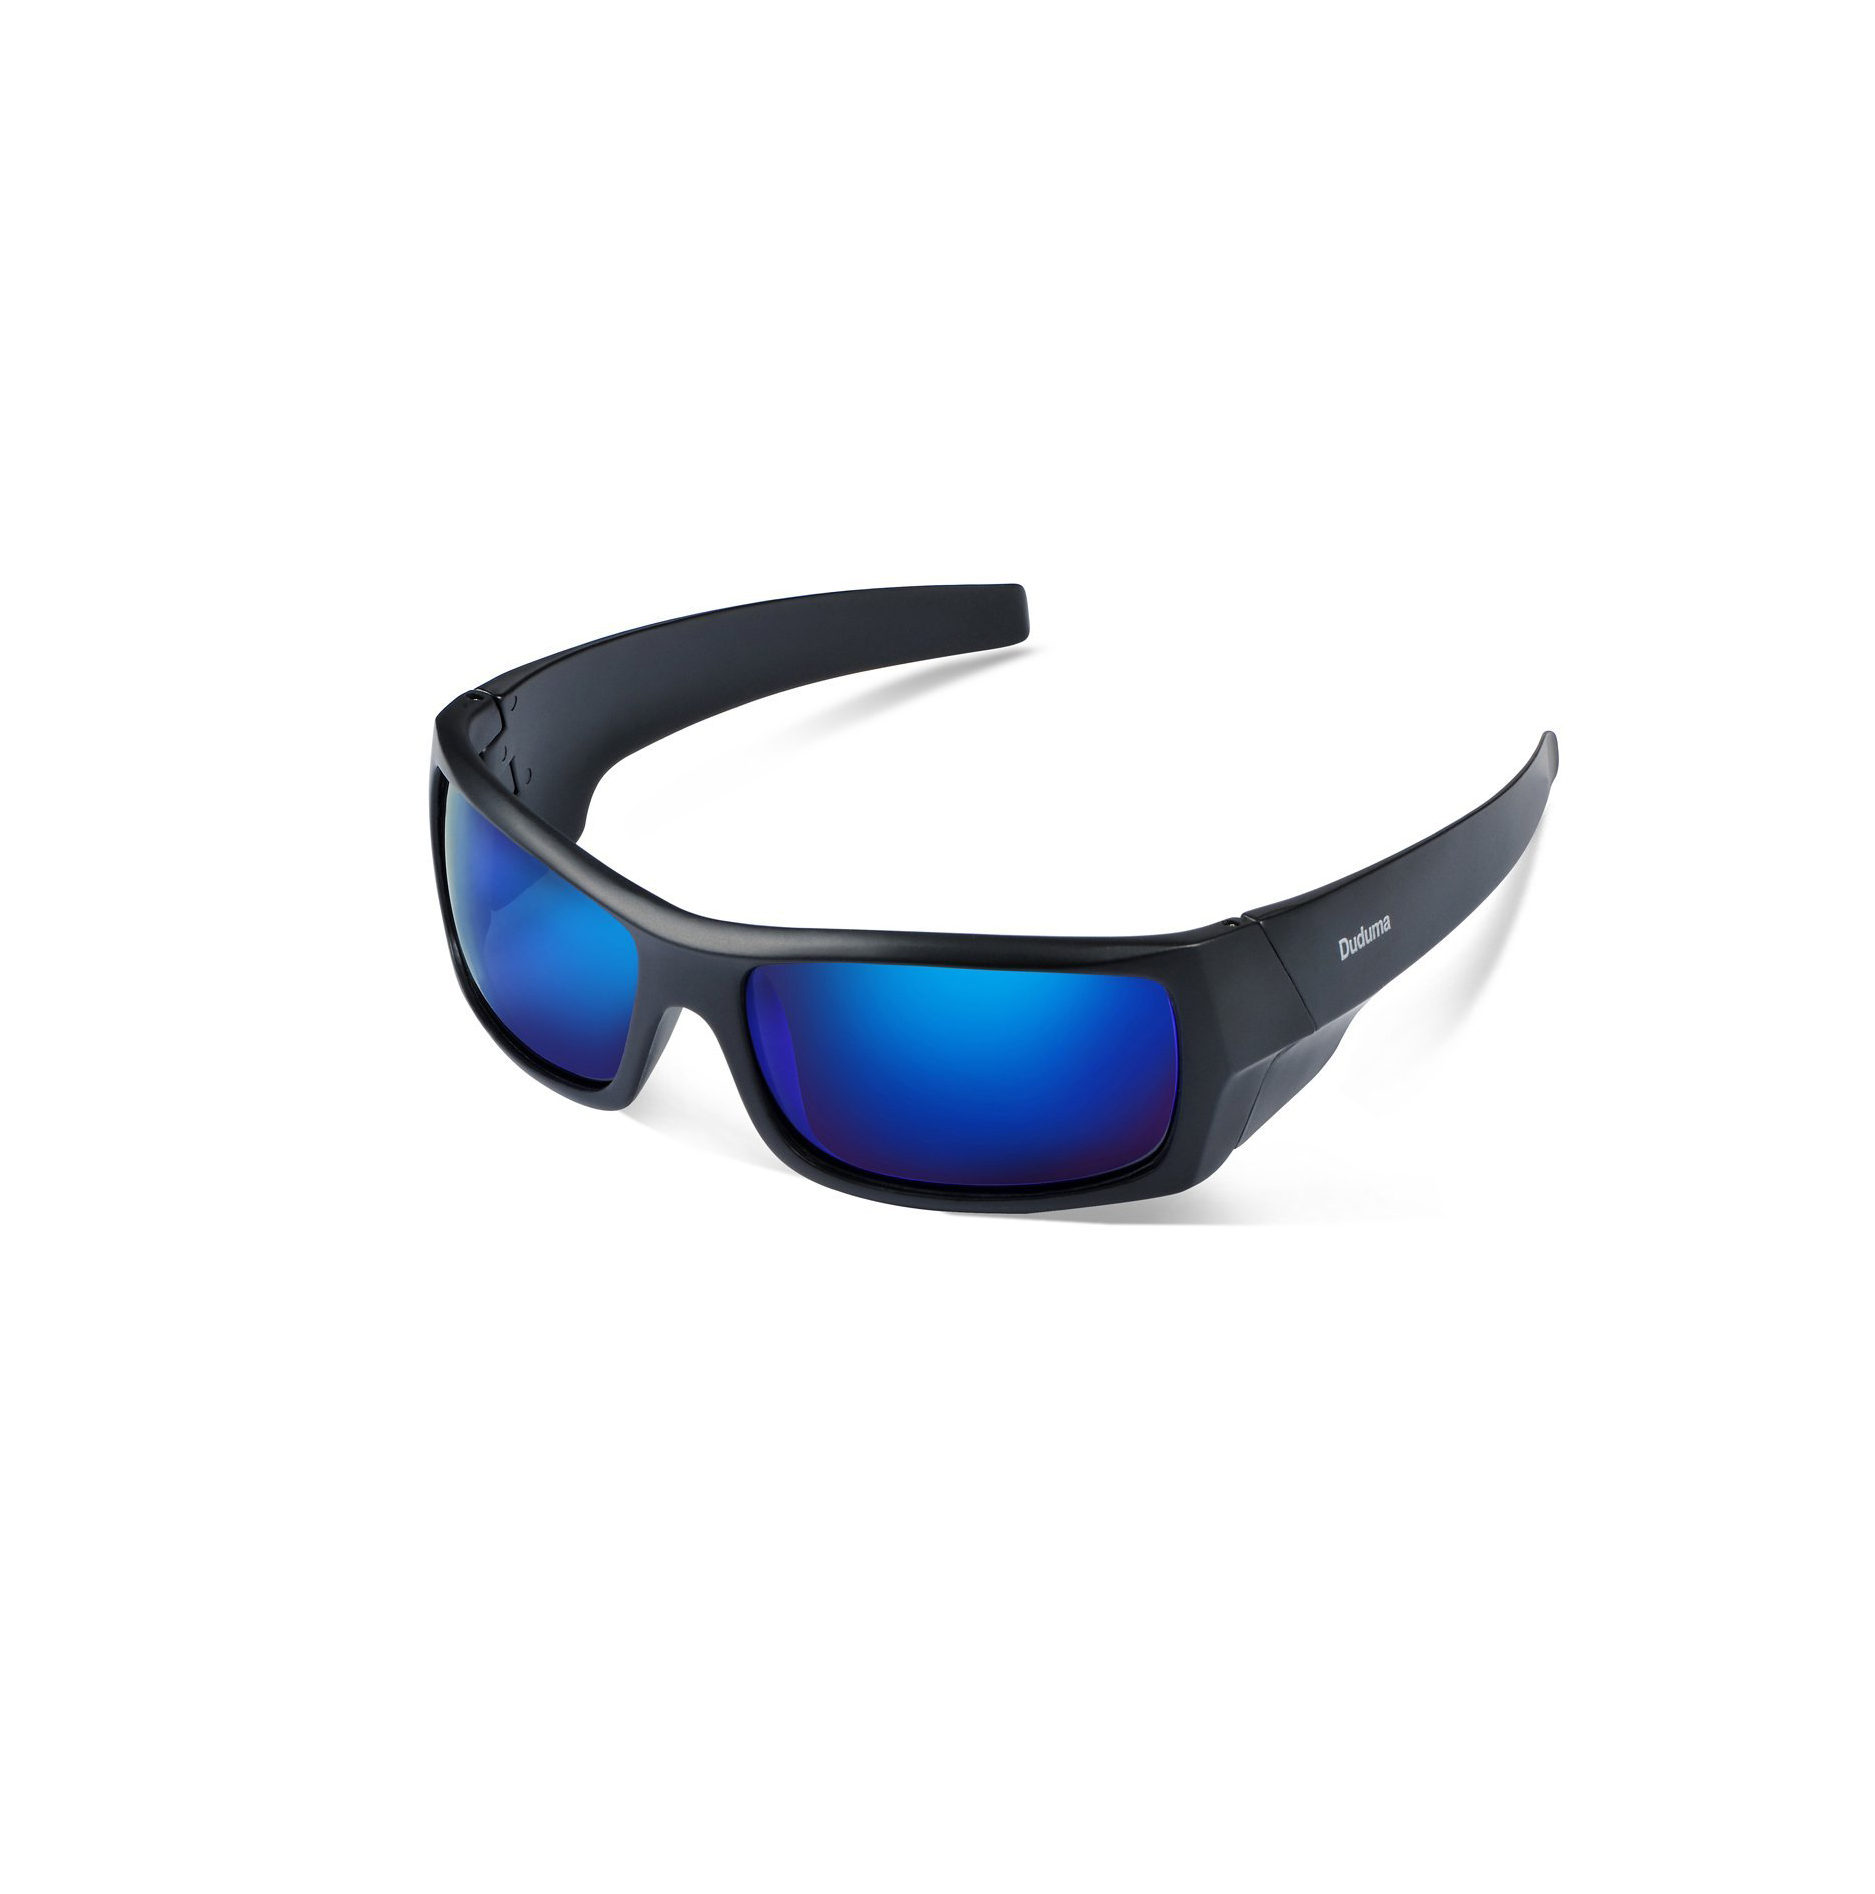 Duduma Tr601 Polarized Sports Sunglasses